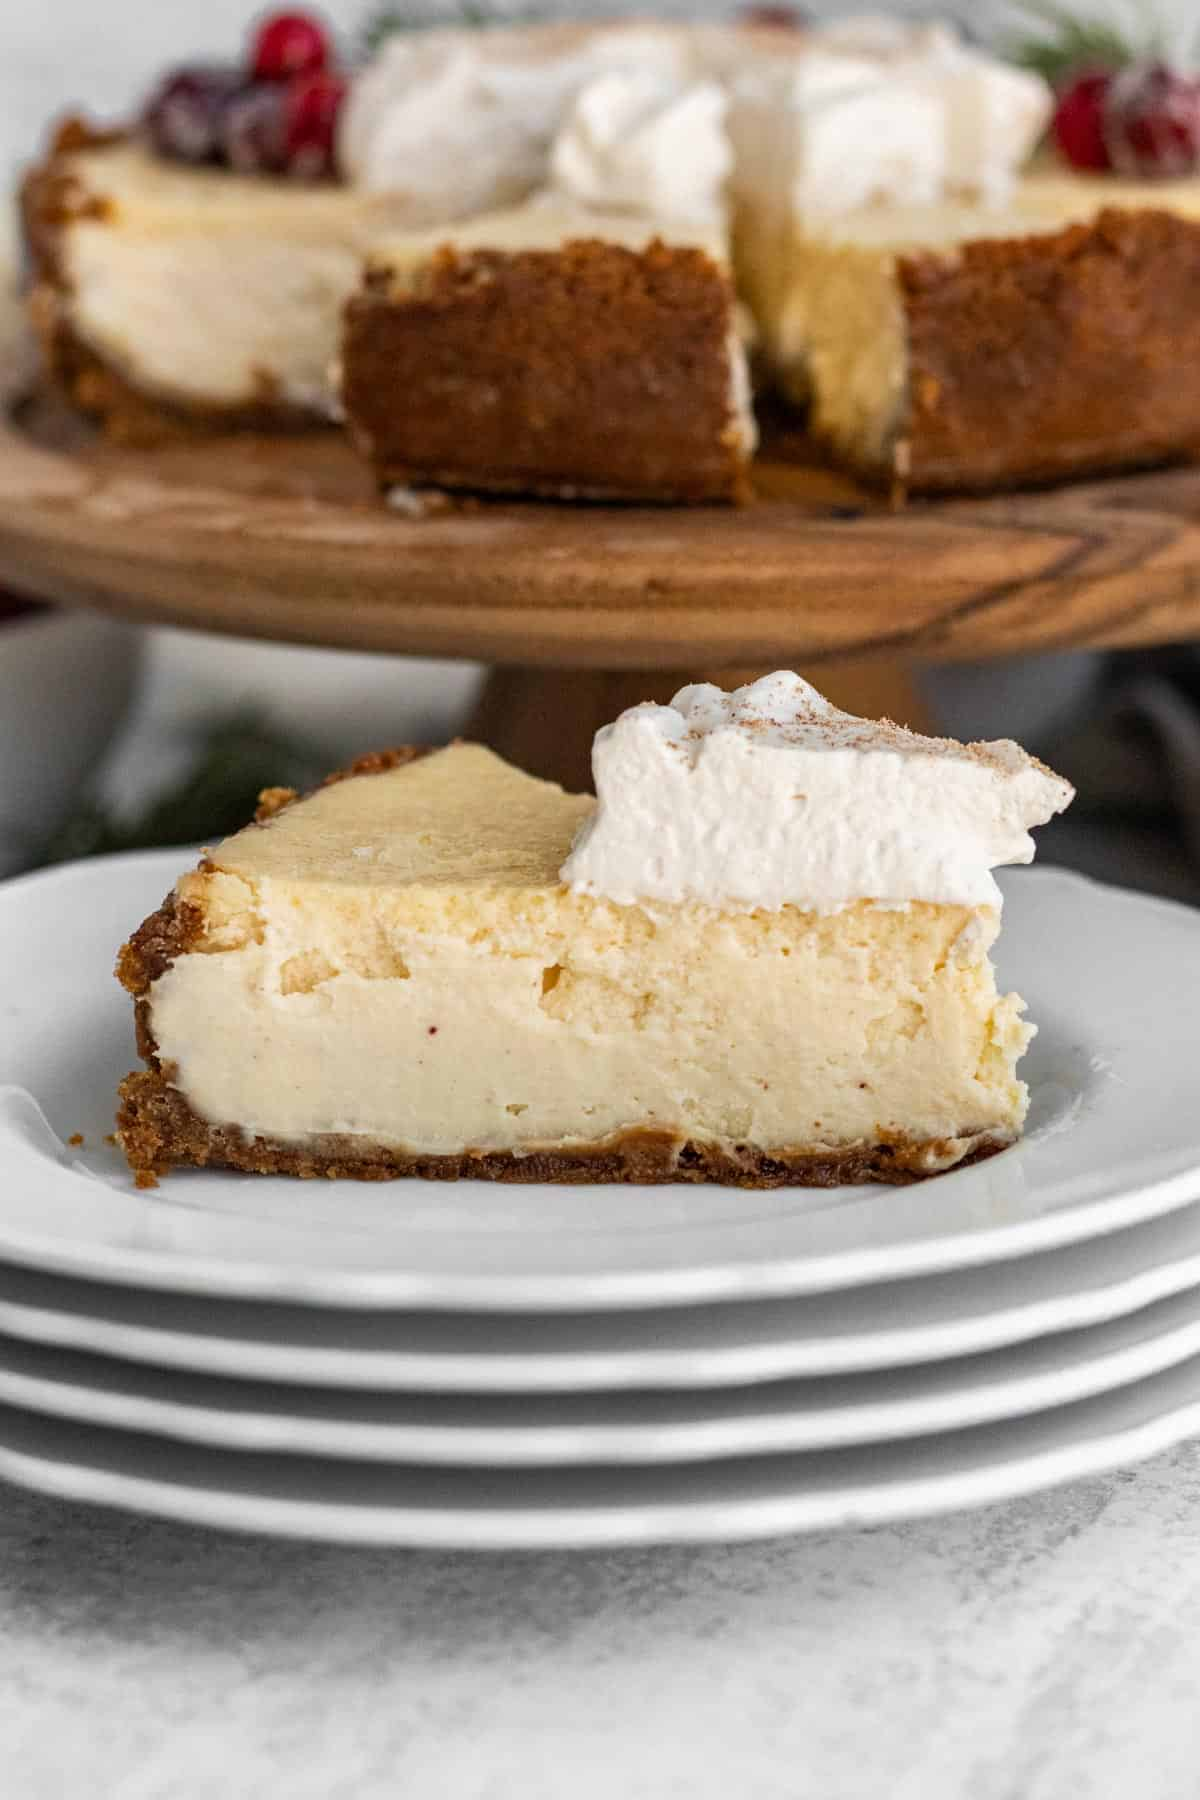 slice of eggnog cheesecake with whipped cream on a stack of white plates with the full cheesecake in the background